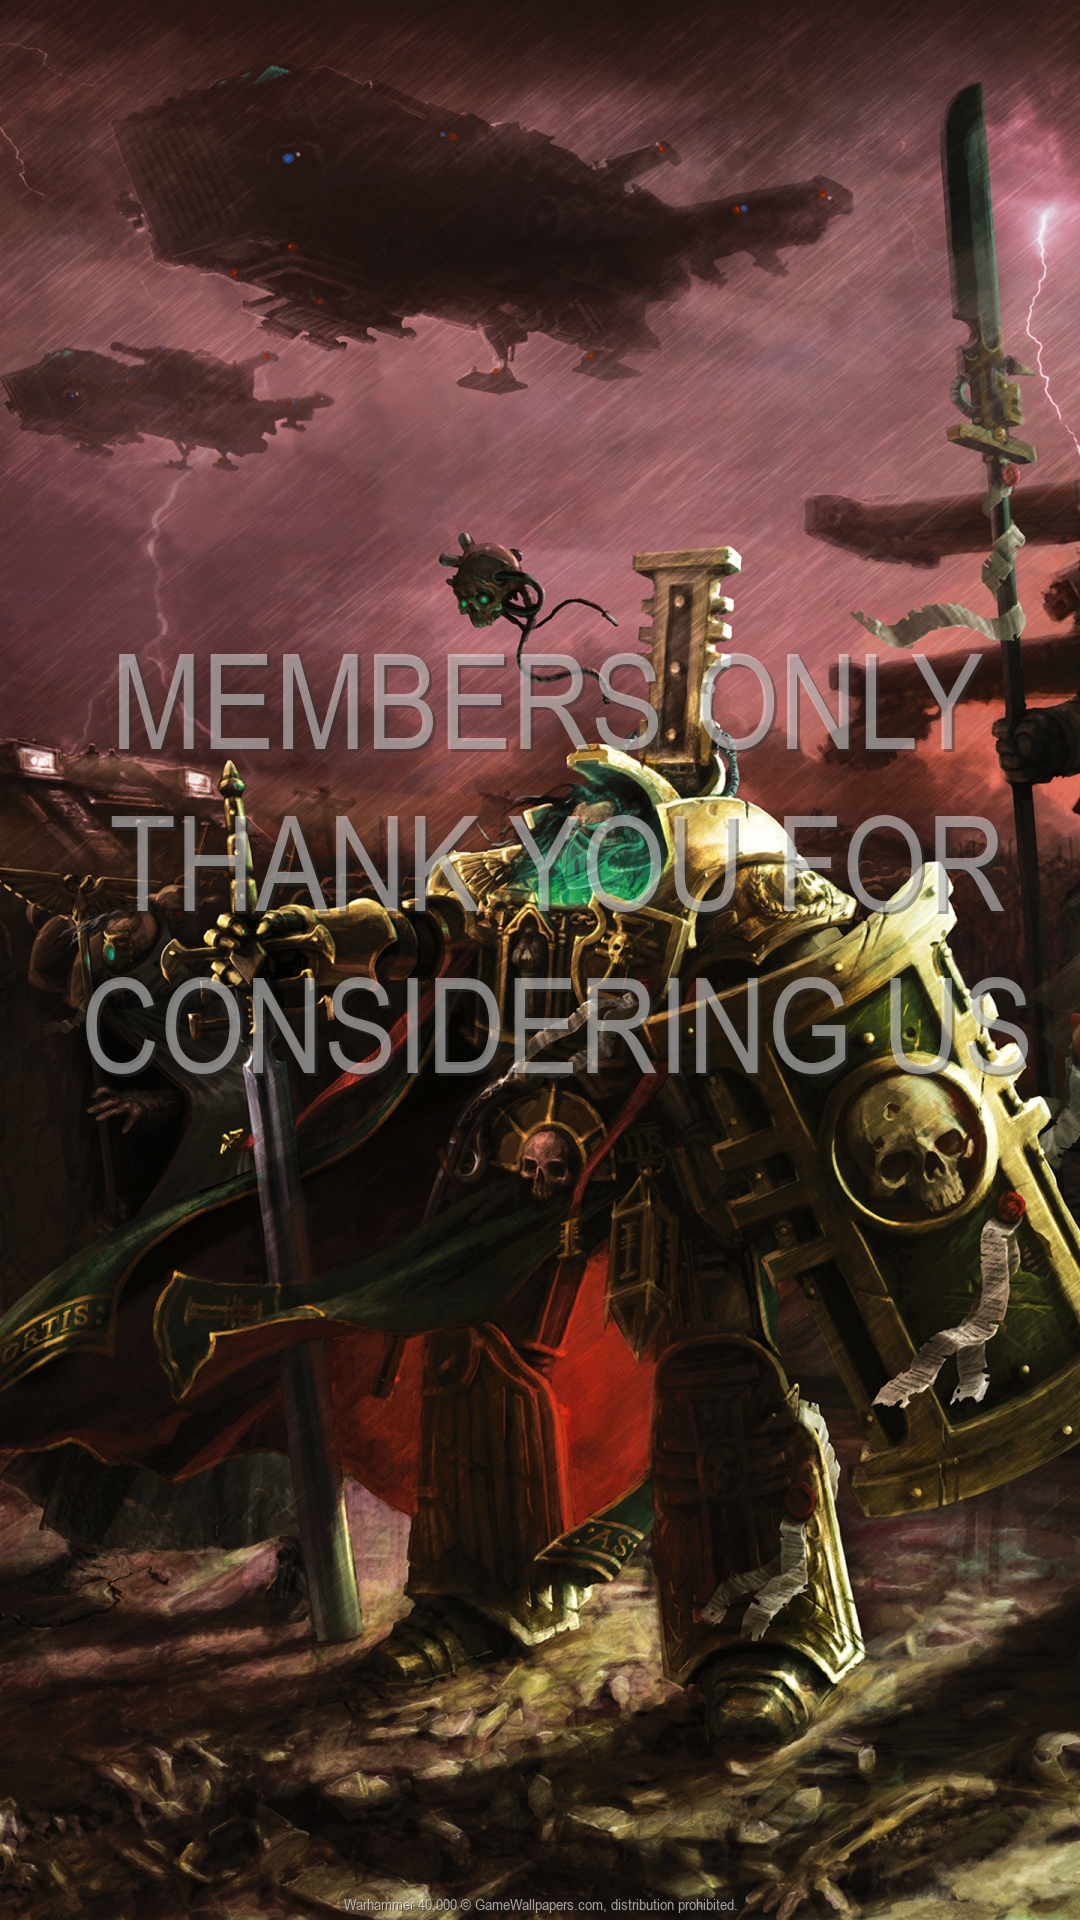 Warhammer 40,000 1920x1080 Mobile wallpaper or background 05